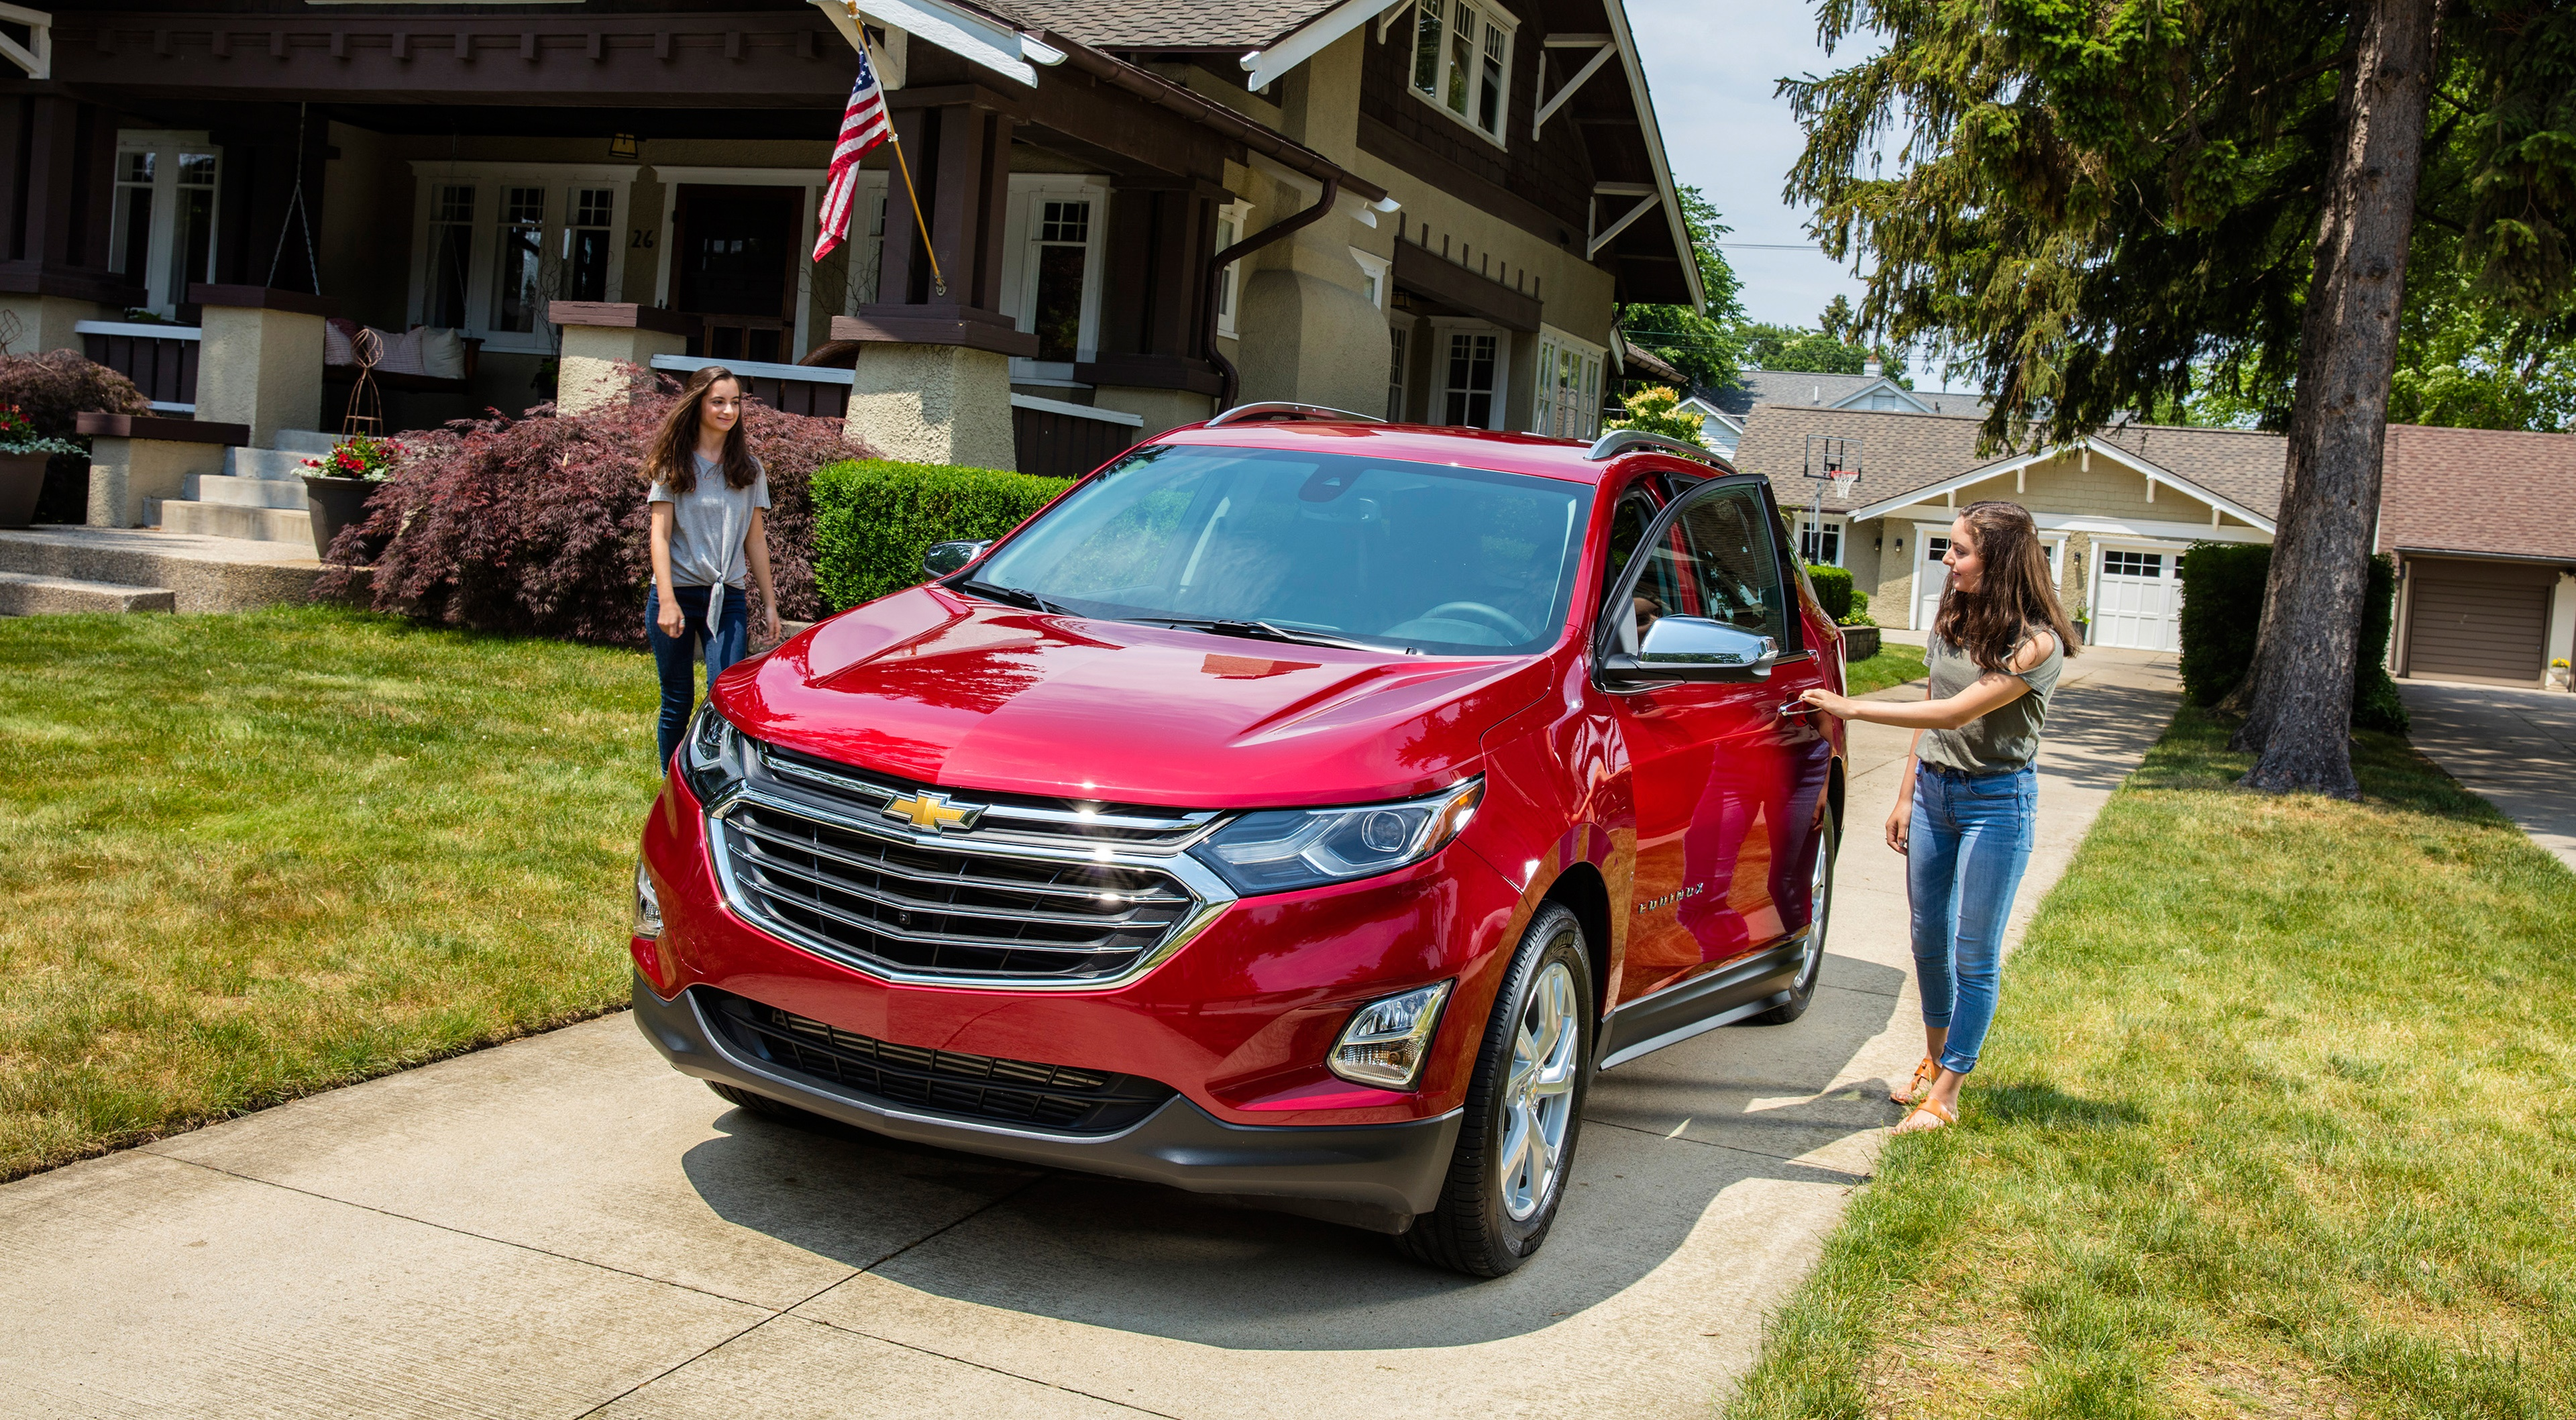 Pictures Chevrolet CUV Equinox, Premier, 2017 Red Girls Cars Front Grass 3840x2117 Crossover female young woman auto automobile